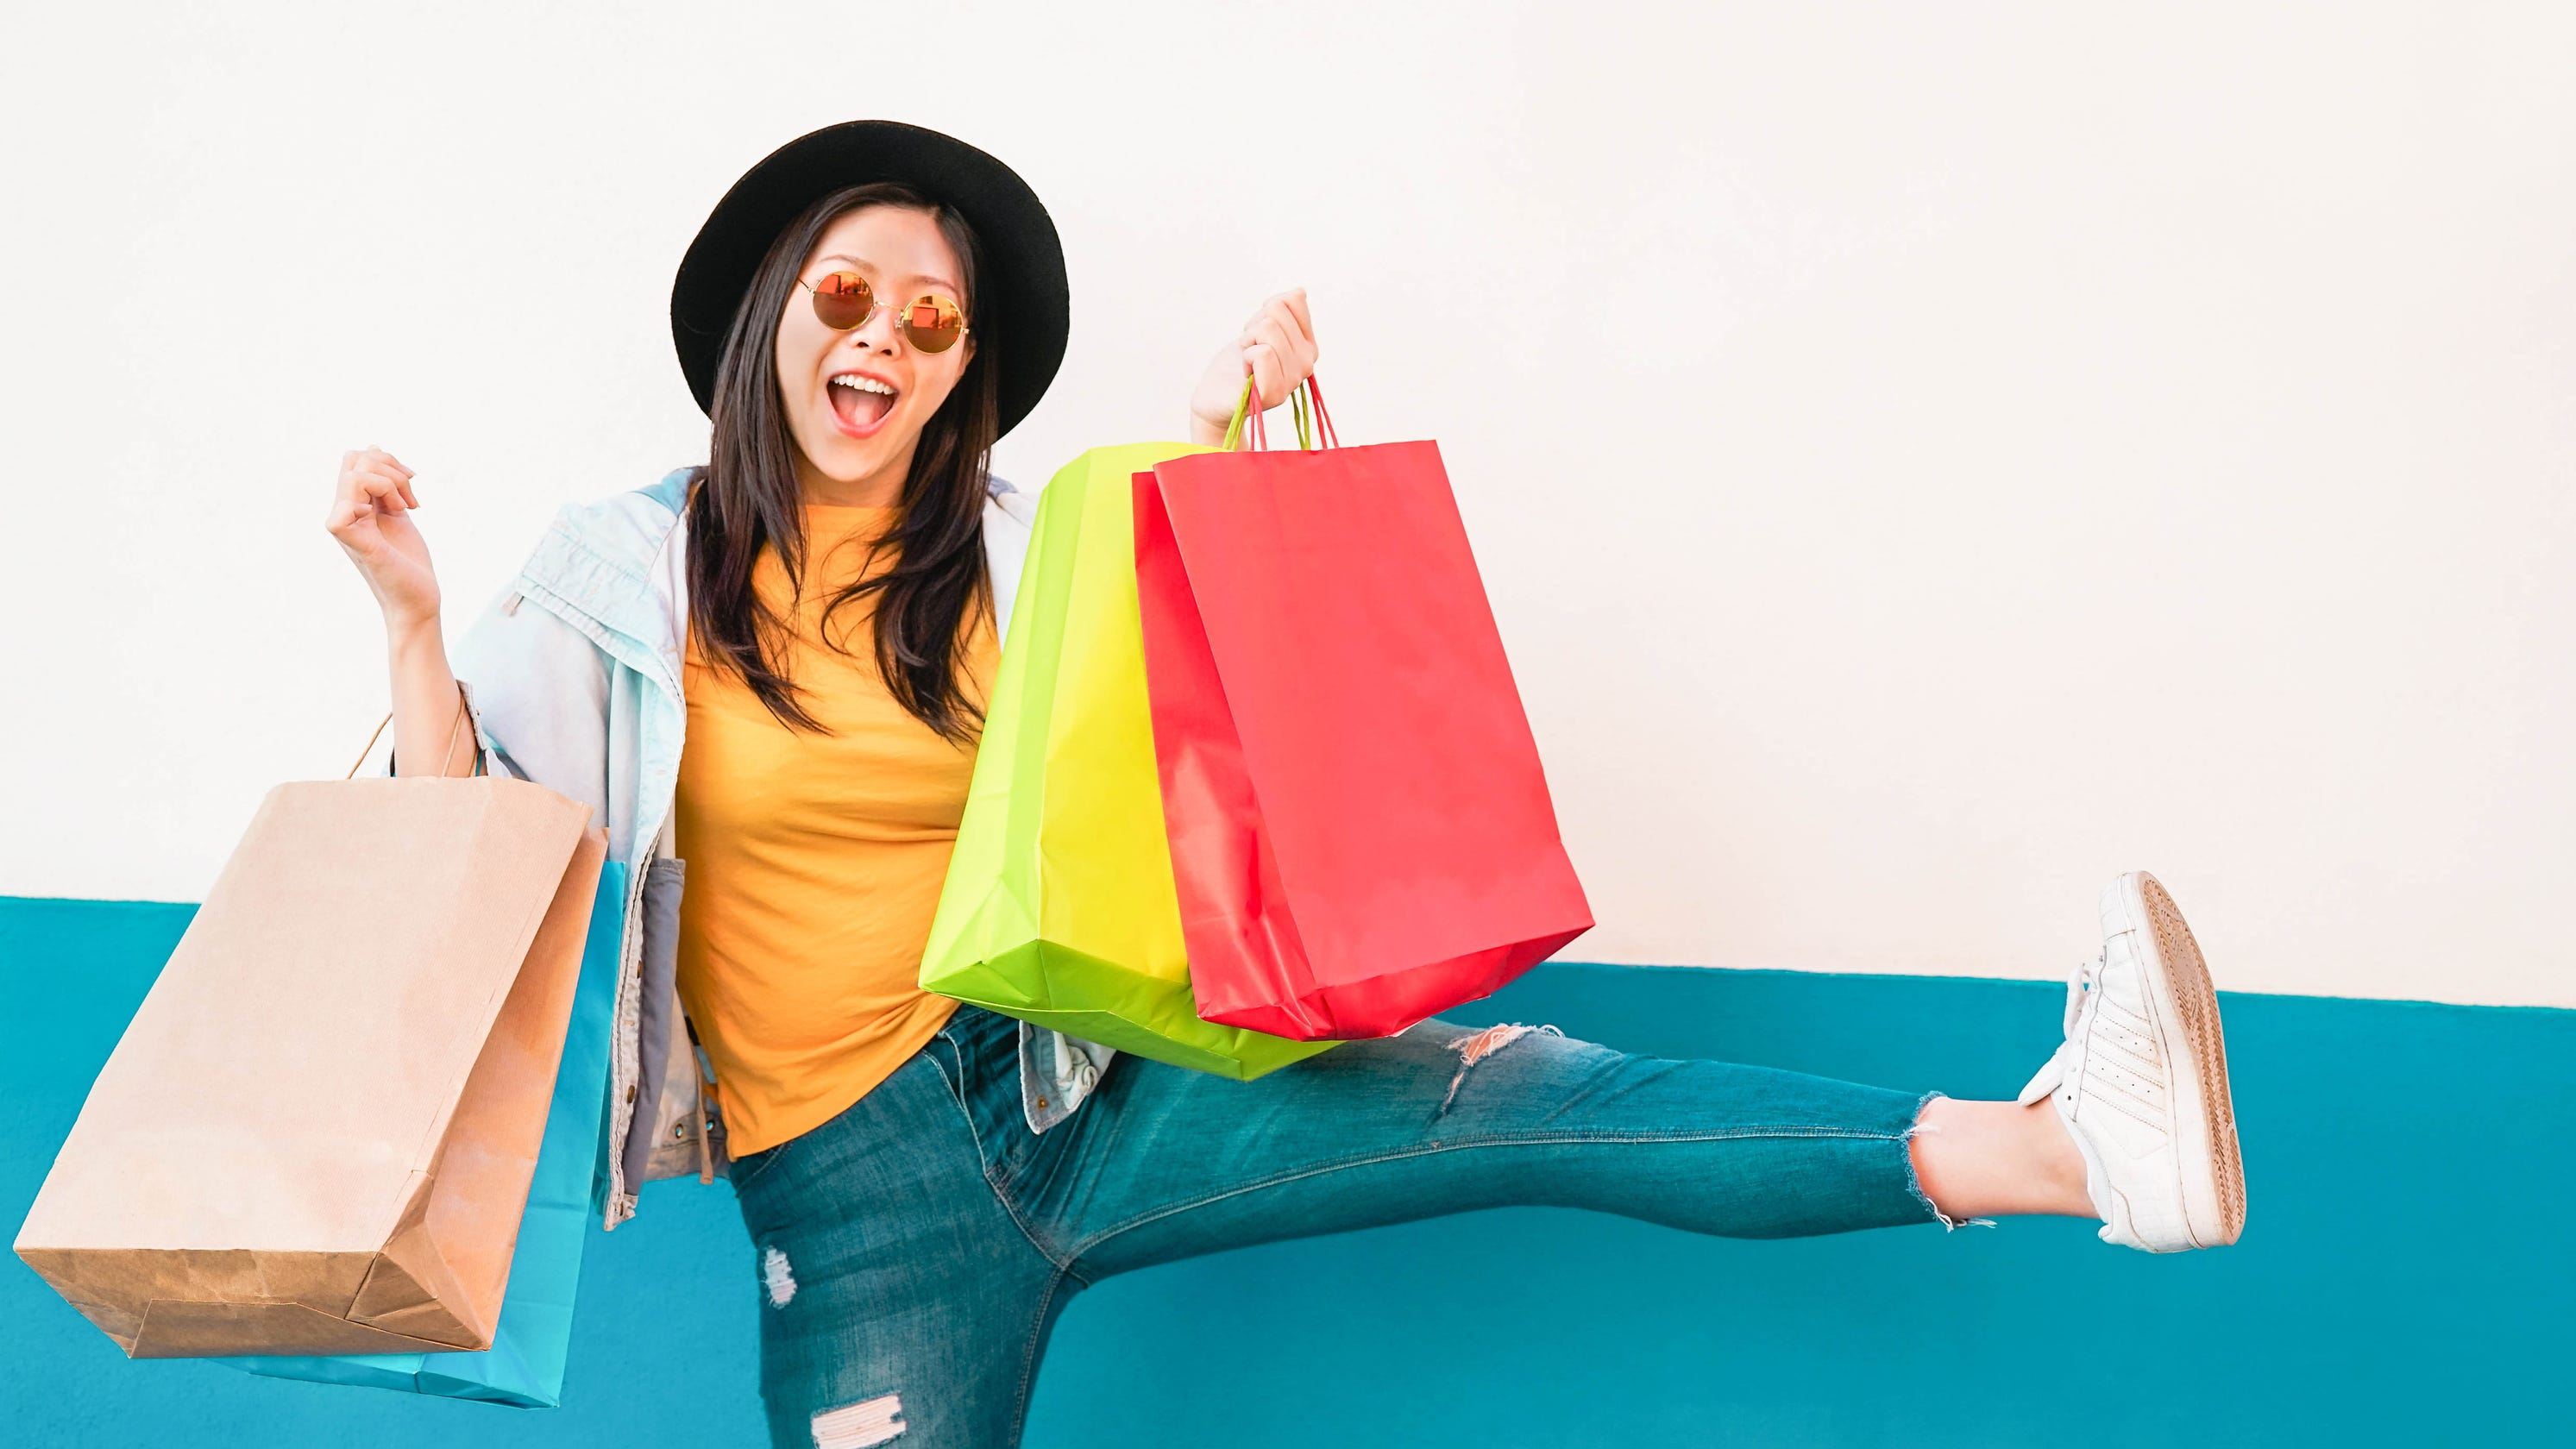 Black Friday 2019 The Best Deals And Sales To Expect This Year